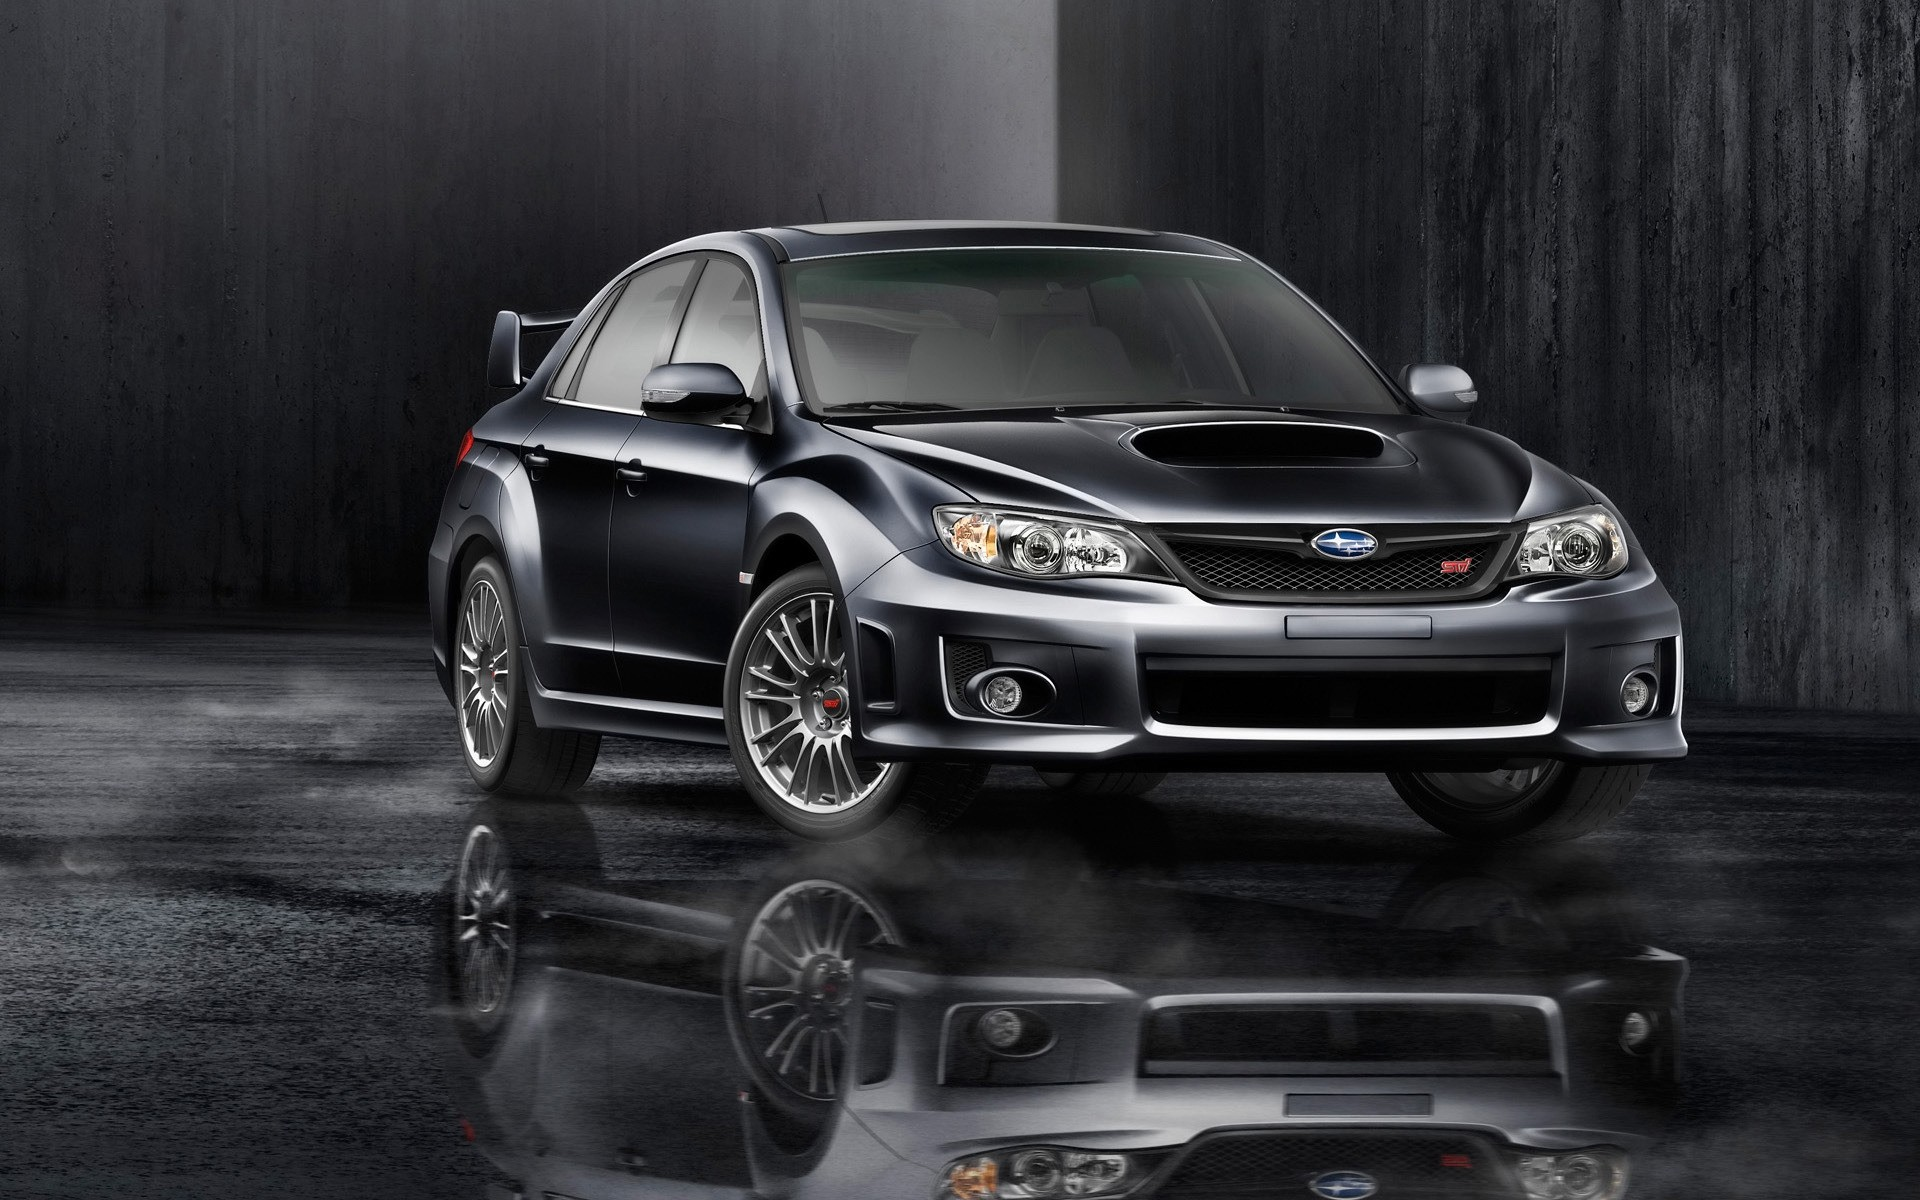 2011 Subaru Impreza Wrx Sti Android Wallpapers